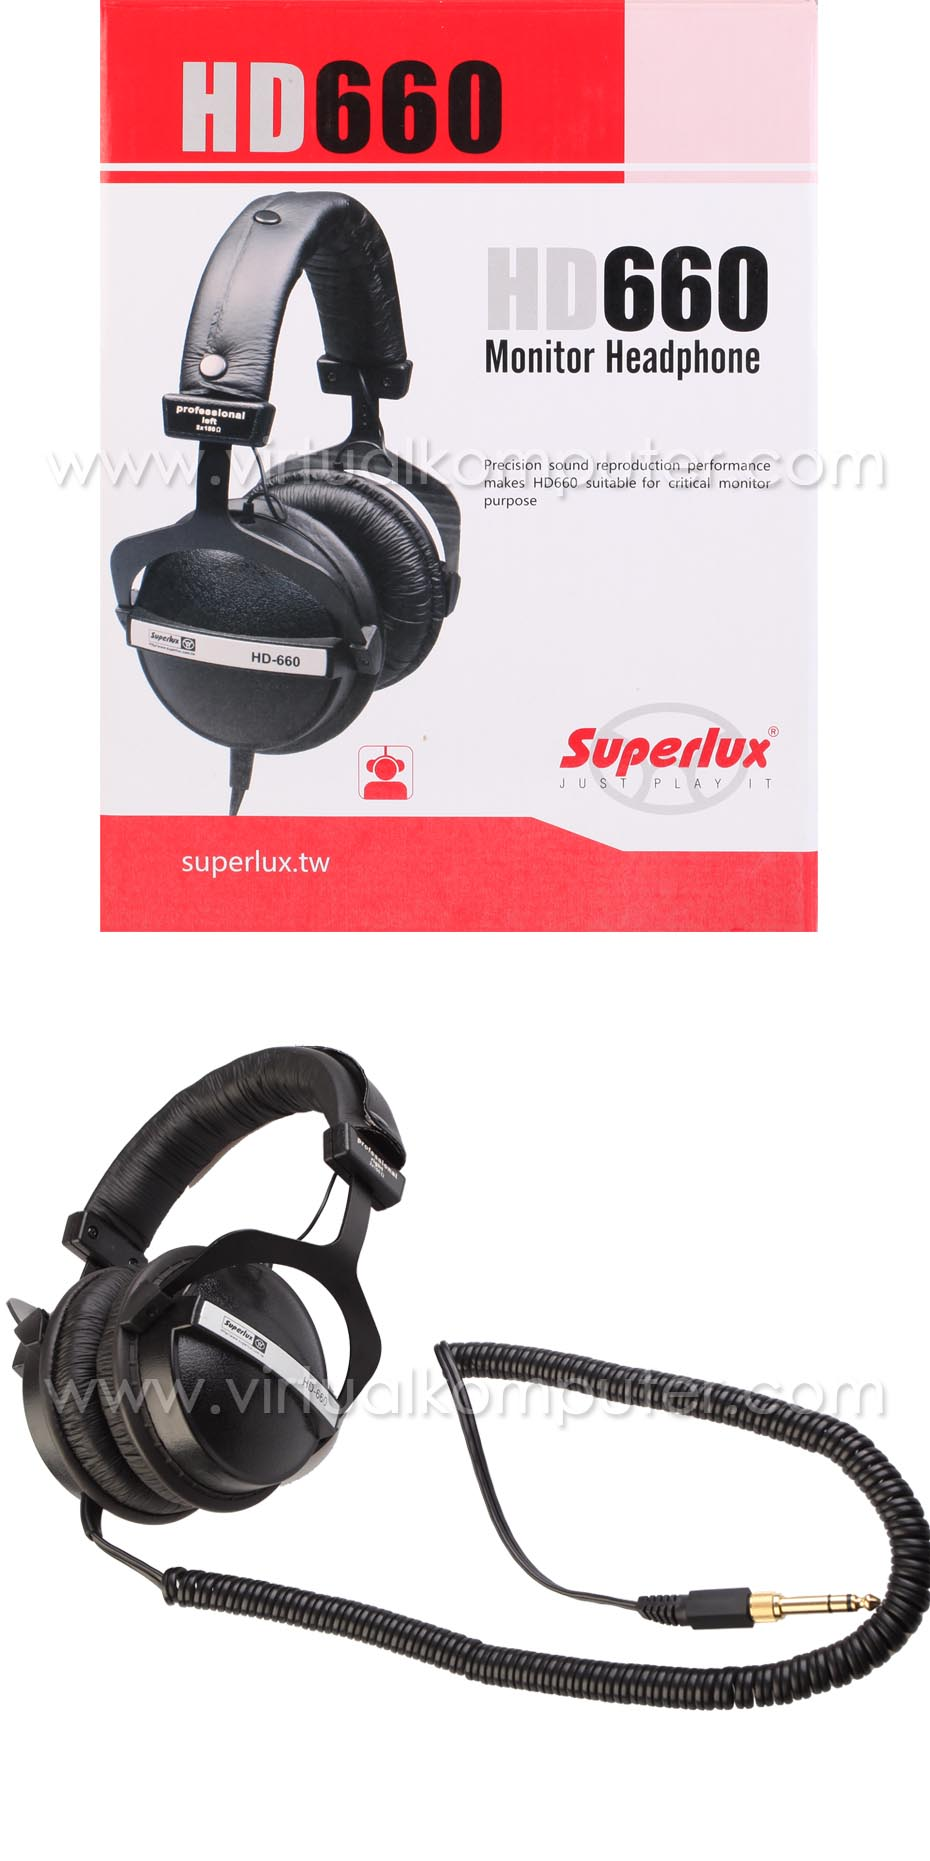 Headphone Superlux HD660 Overview